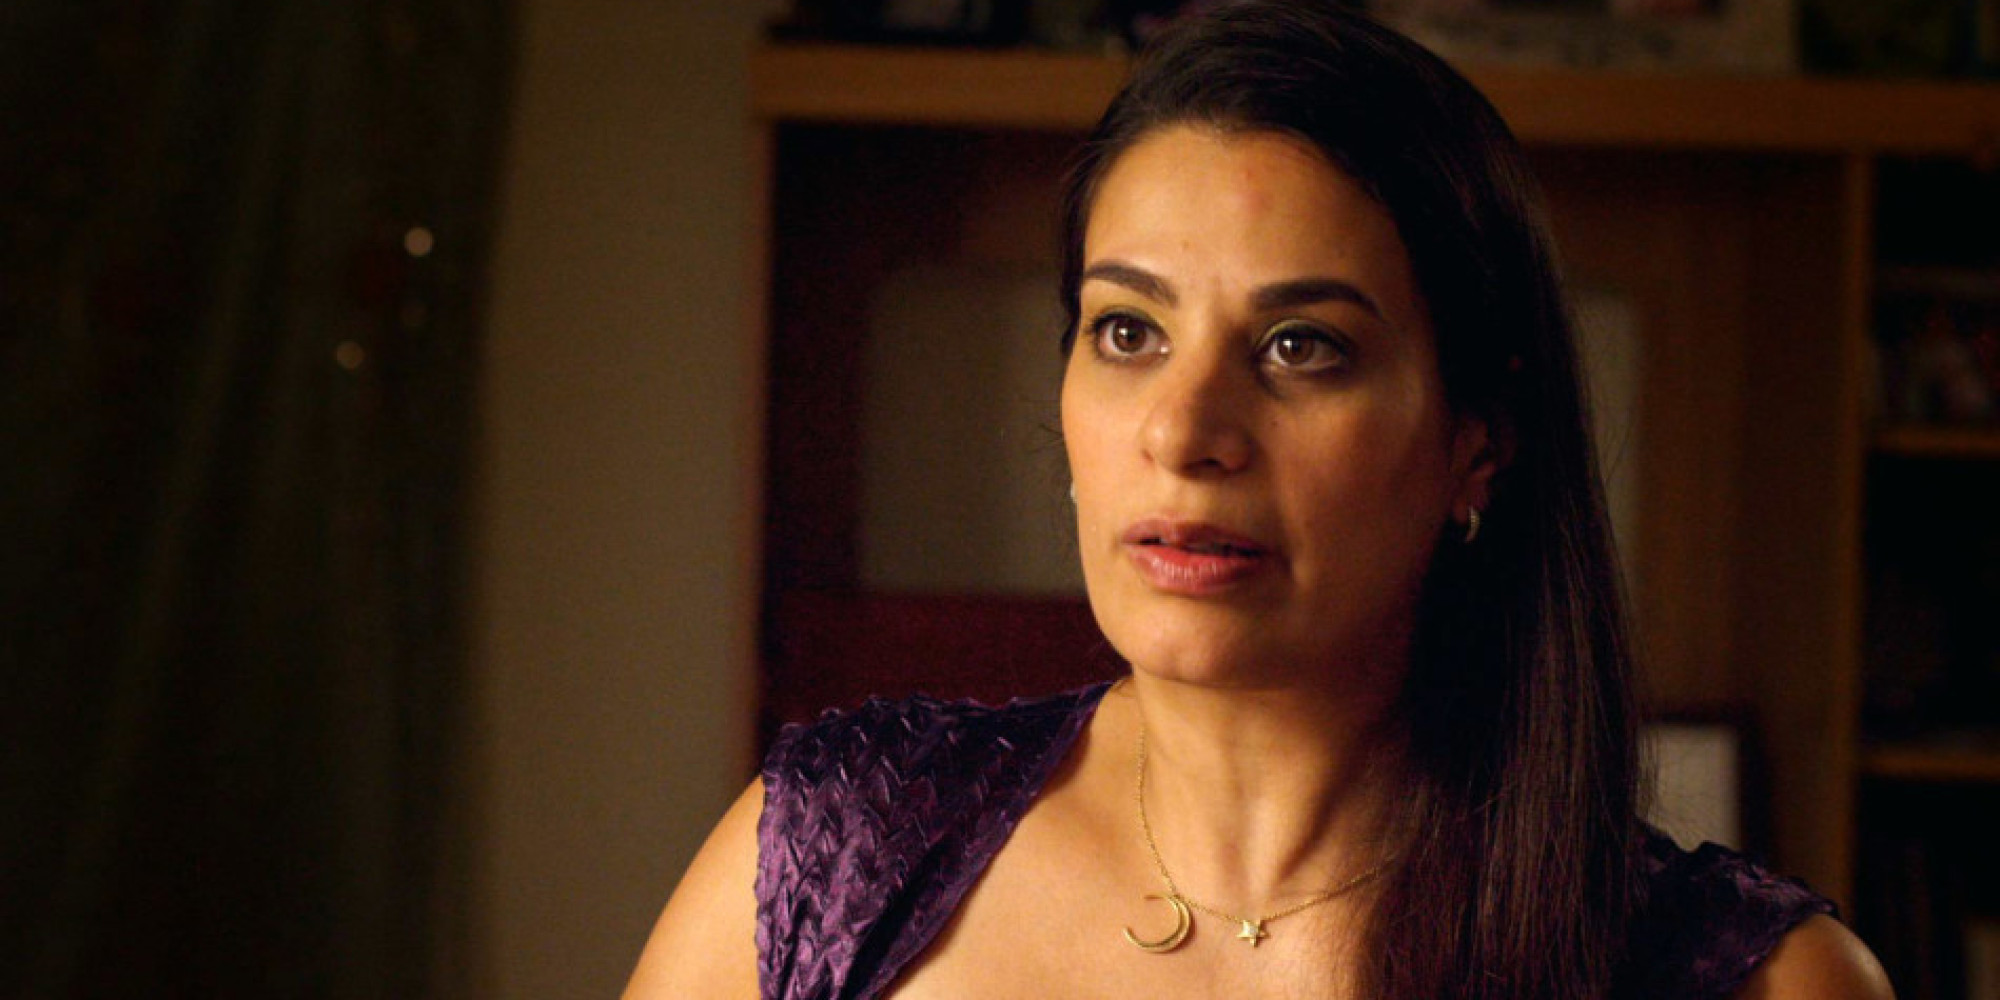 Maysoon Zayid Shares The Hateful Comments She Endured ...